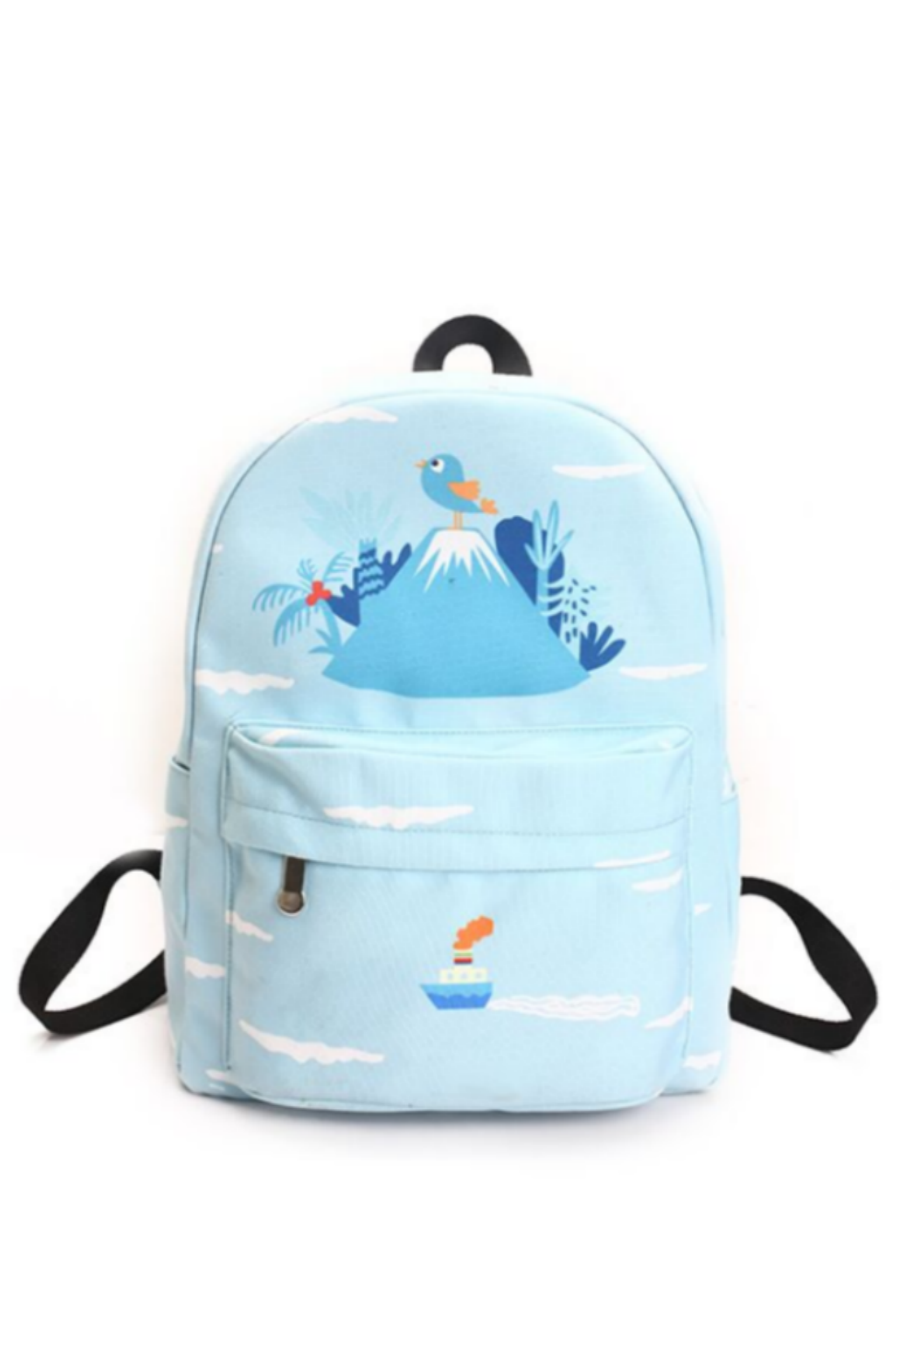 cad381f2b7 Sky Blue Bird Prints Backpack. Tap to expand